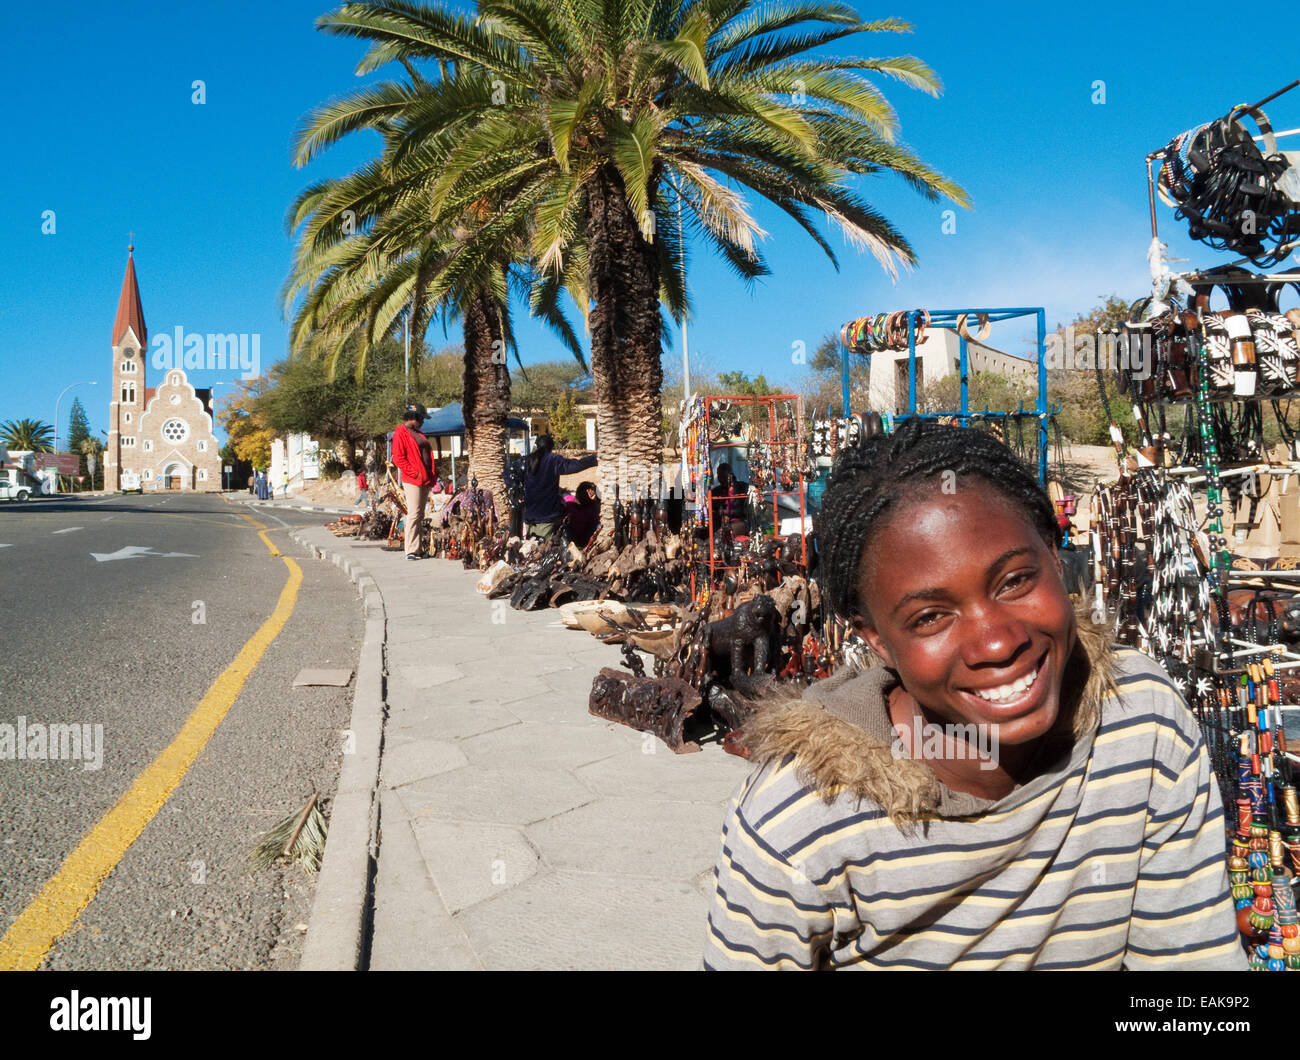 Saleswoman at the souvenir market, Evangelical Lutheran Church of Christ at the rear, Windhoek, Namibia - Stock Image